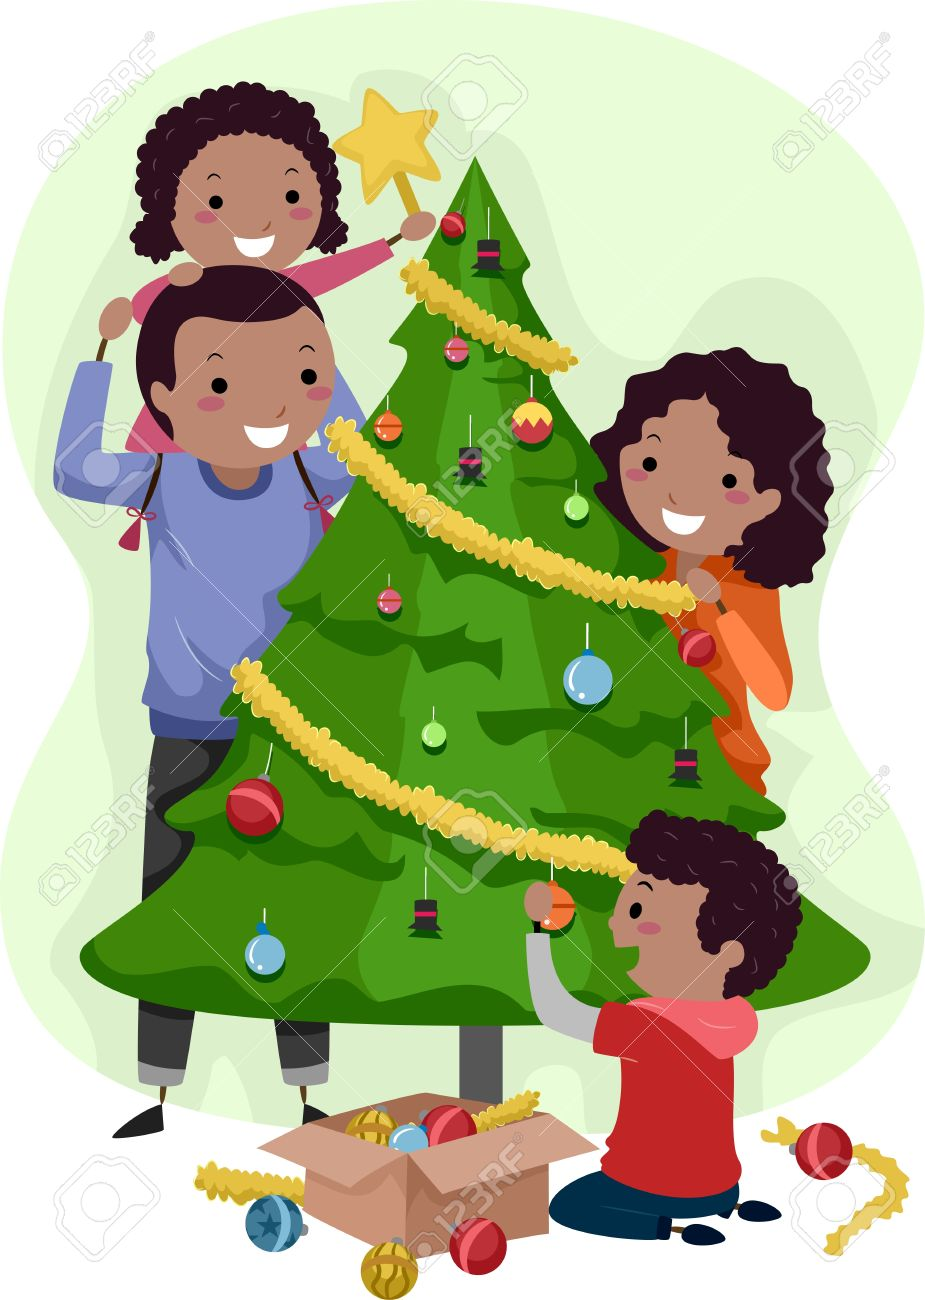 illustration of a family decorating a christmas tree together